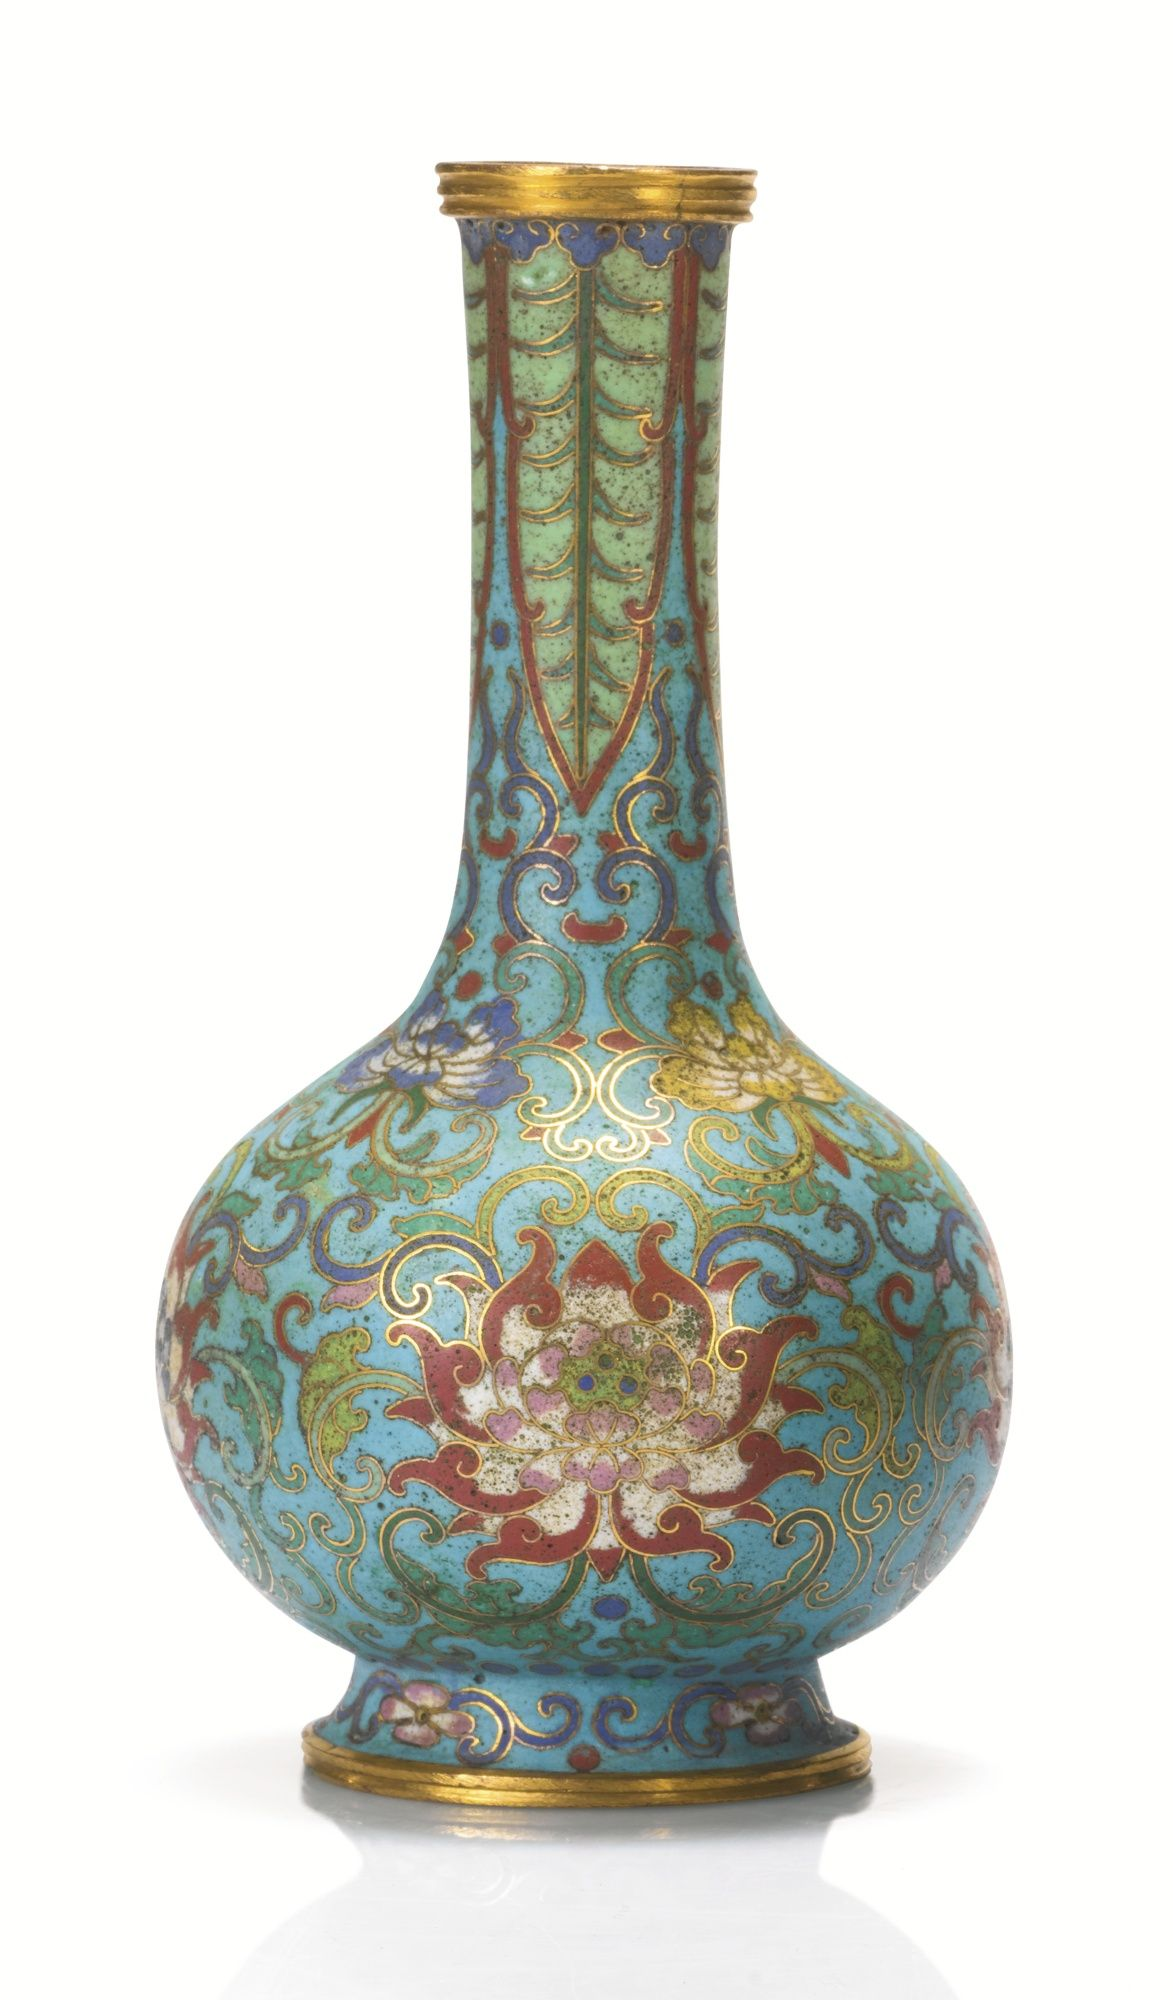 A GILT-BRONZE AND CLOISONNE ENAMEL VASE, QING DYNASTY, QIANLONG PERIOD Estimate 10,000 — 15,000 EUR